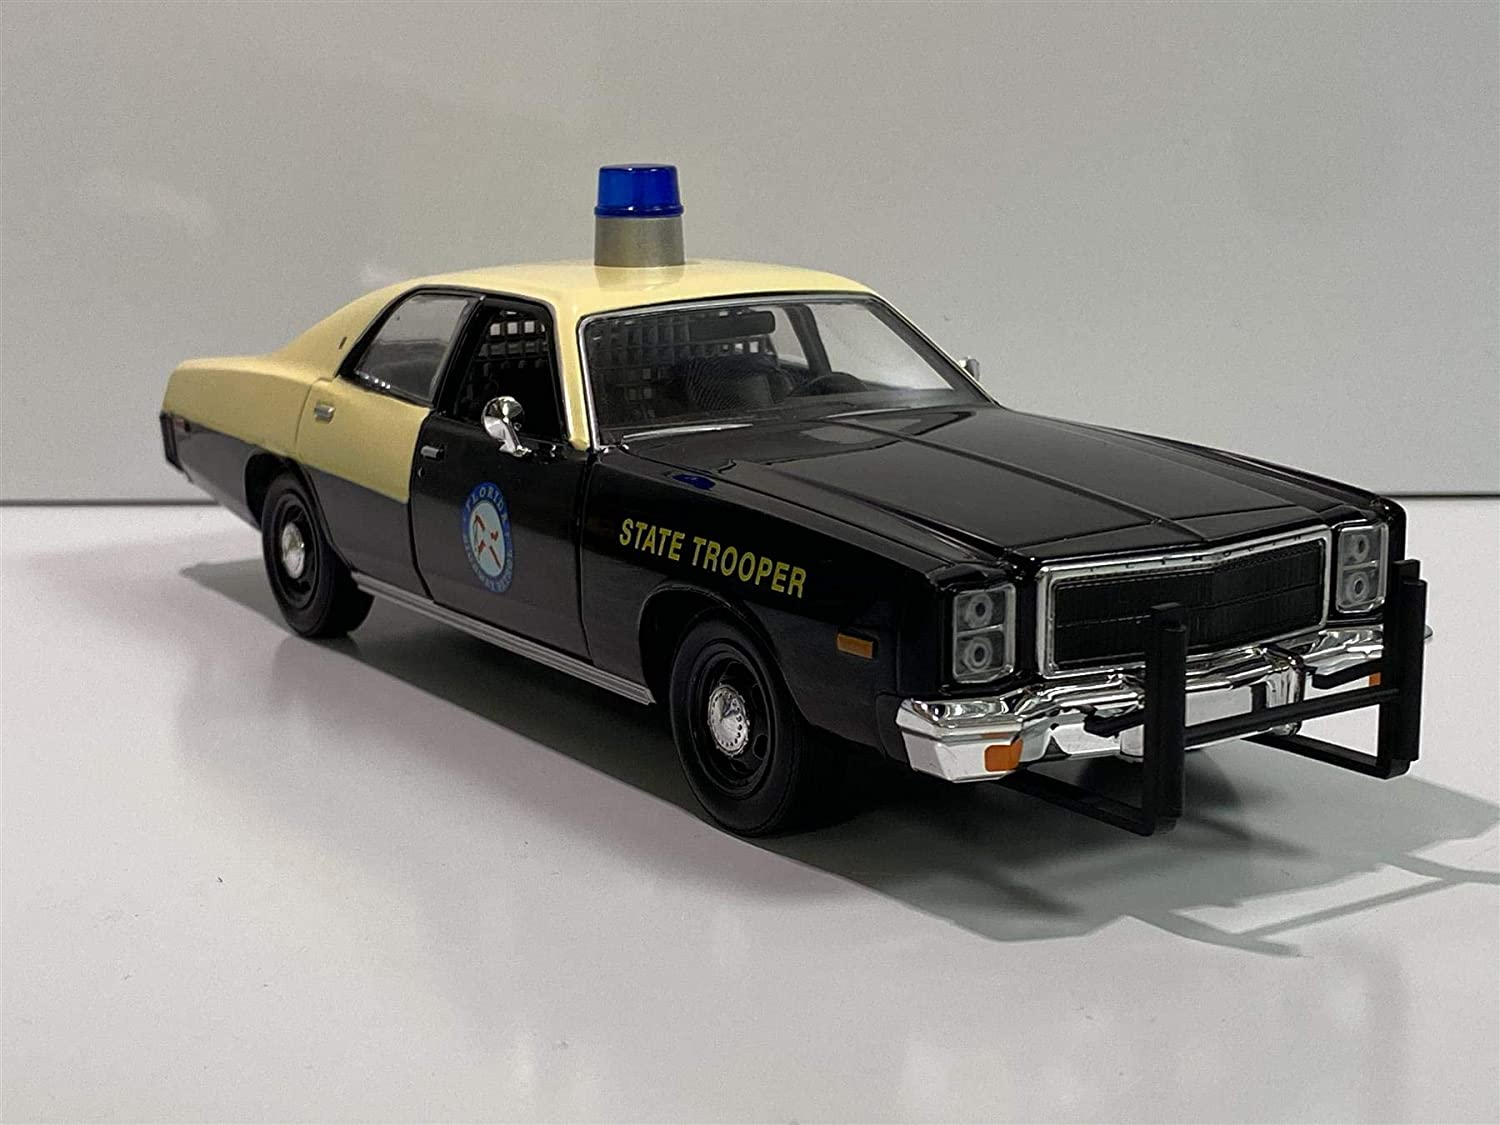 Greenlight 1978 Plymouth Fury Florida Highway Patrol Black and Yellow Hot Pursuit 1//24 Diecast Model Car 85512